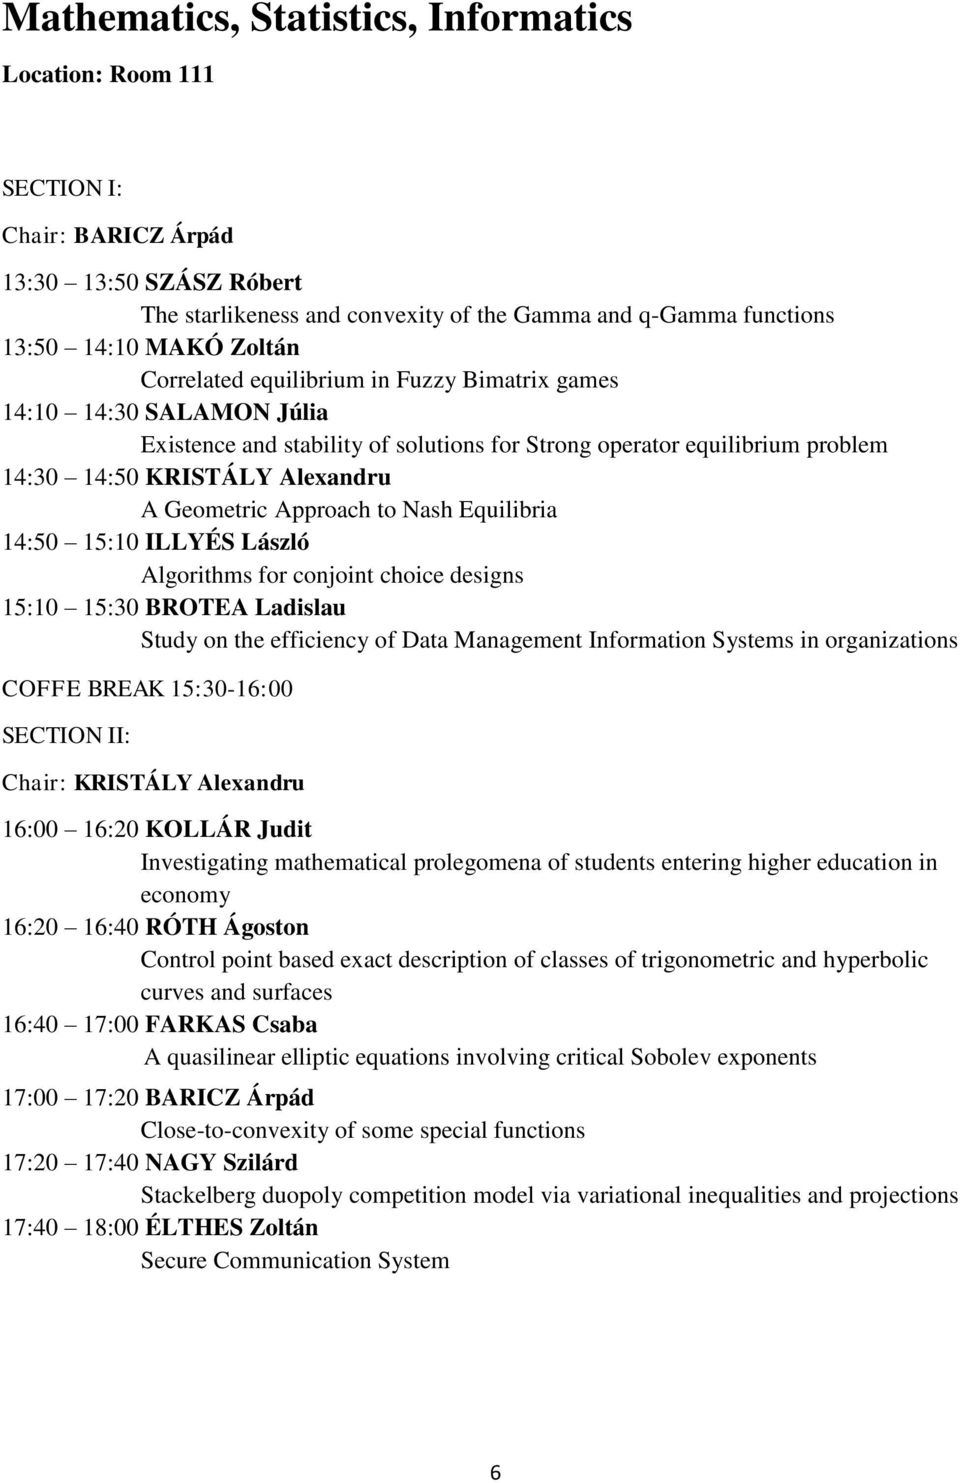 Approach to Nash Equilibria 14:50 15:10 ILLYÉS László Algorithms for conjoint choice designs 15:10 15:30 BROTEA Ladislau Study on the efficiency of Data Management Information Systems in